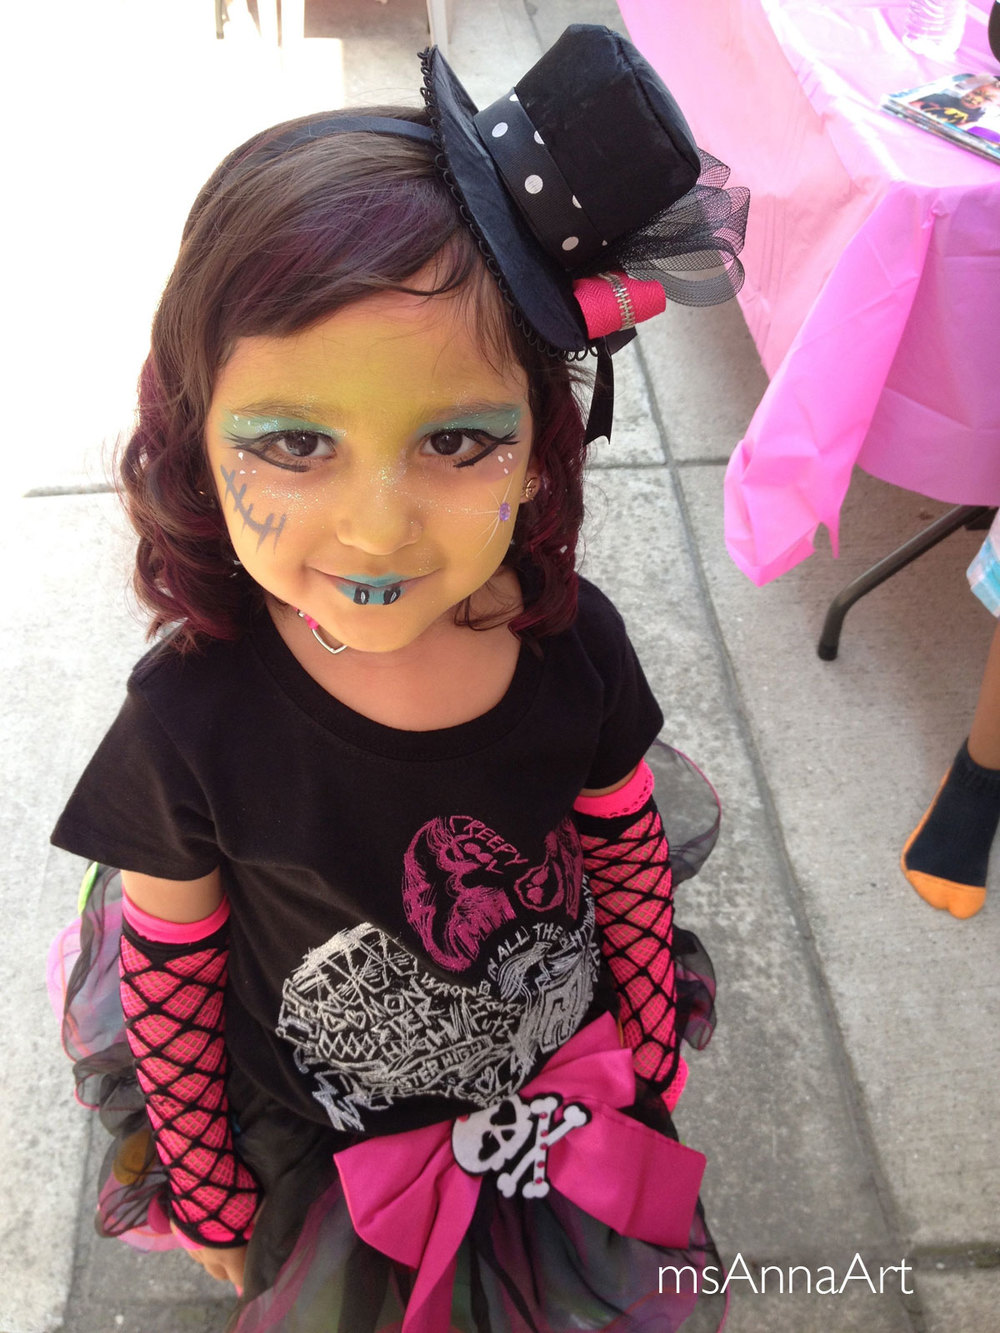 Monster High 5th Birthday, a true artist in the making.